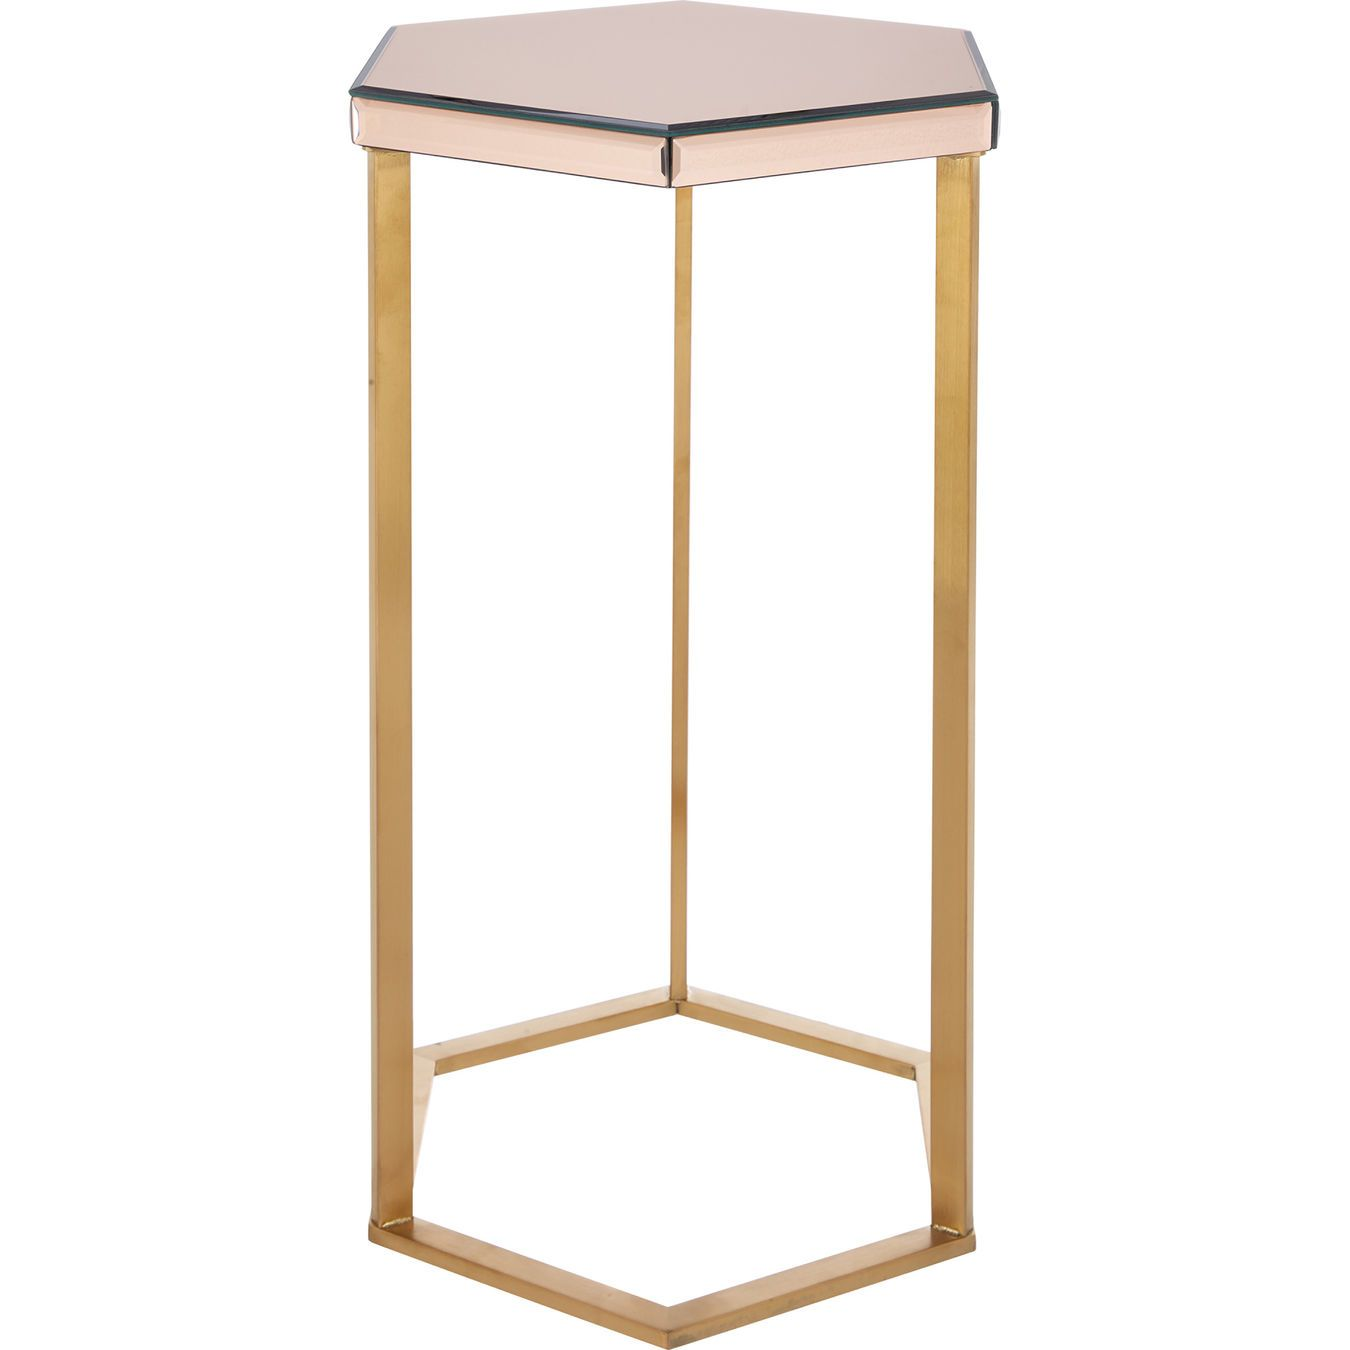 Rose Gold Tone Mirrored Side Table Living Room Home Tk Maxx